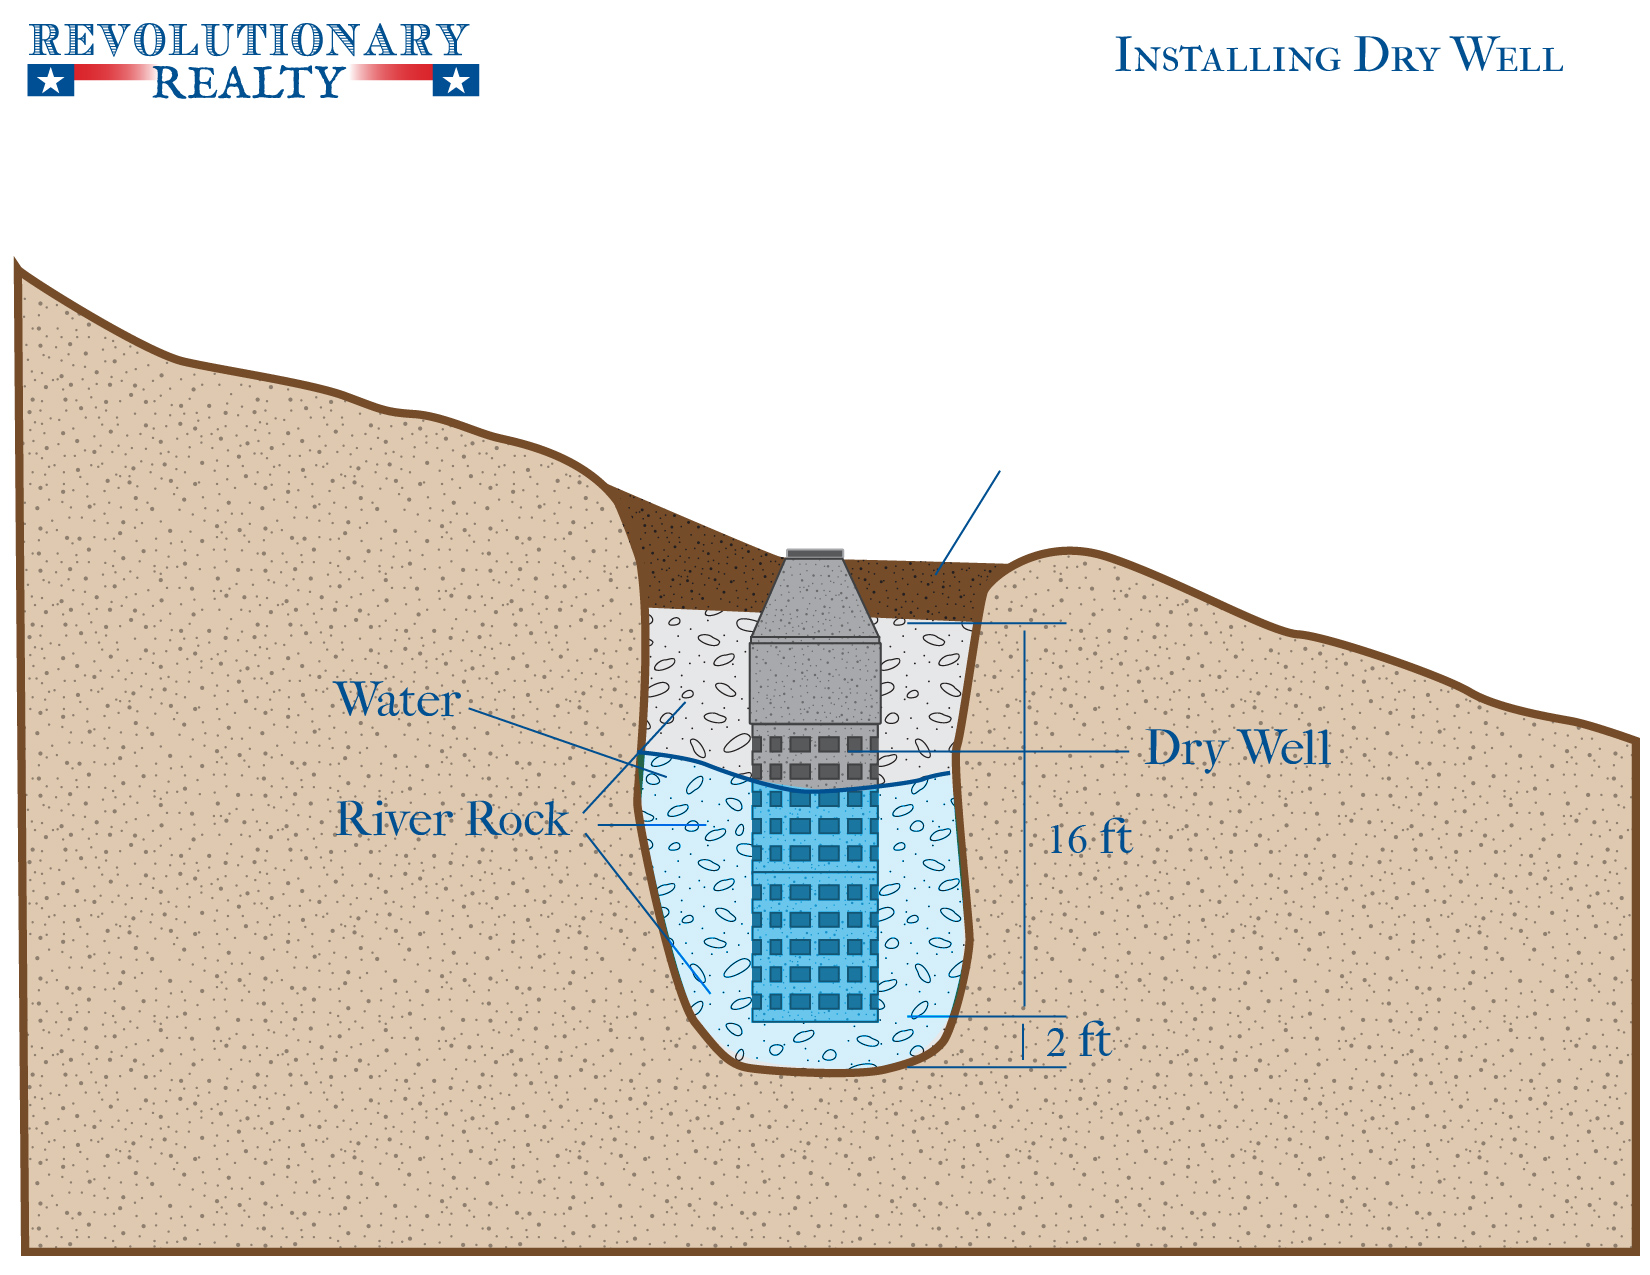 How to dig a shallow well diagram weg motor wiring revolutionary realty coeur dalene real estate agency idaho watersystem drawing 02 offgrid springshtml how to dig a shallow well diagram pooptronica Images